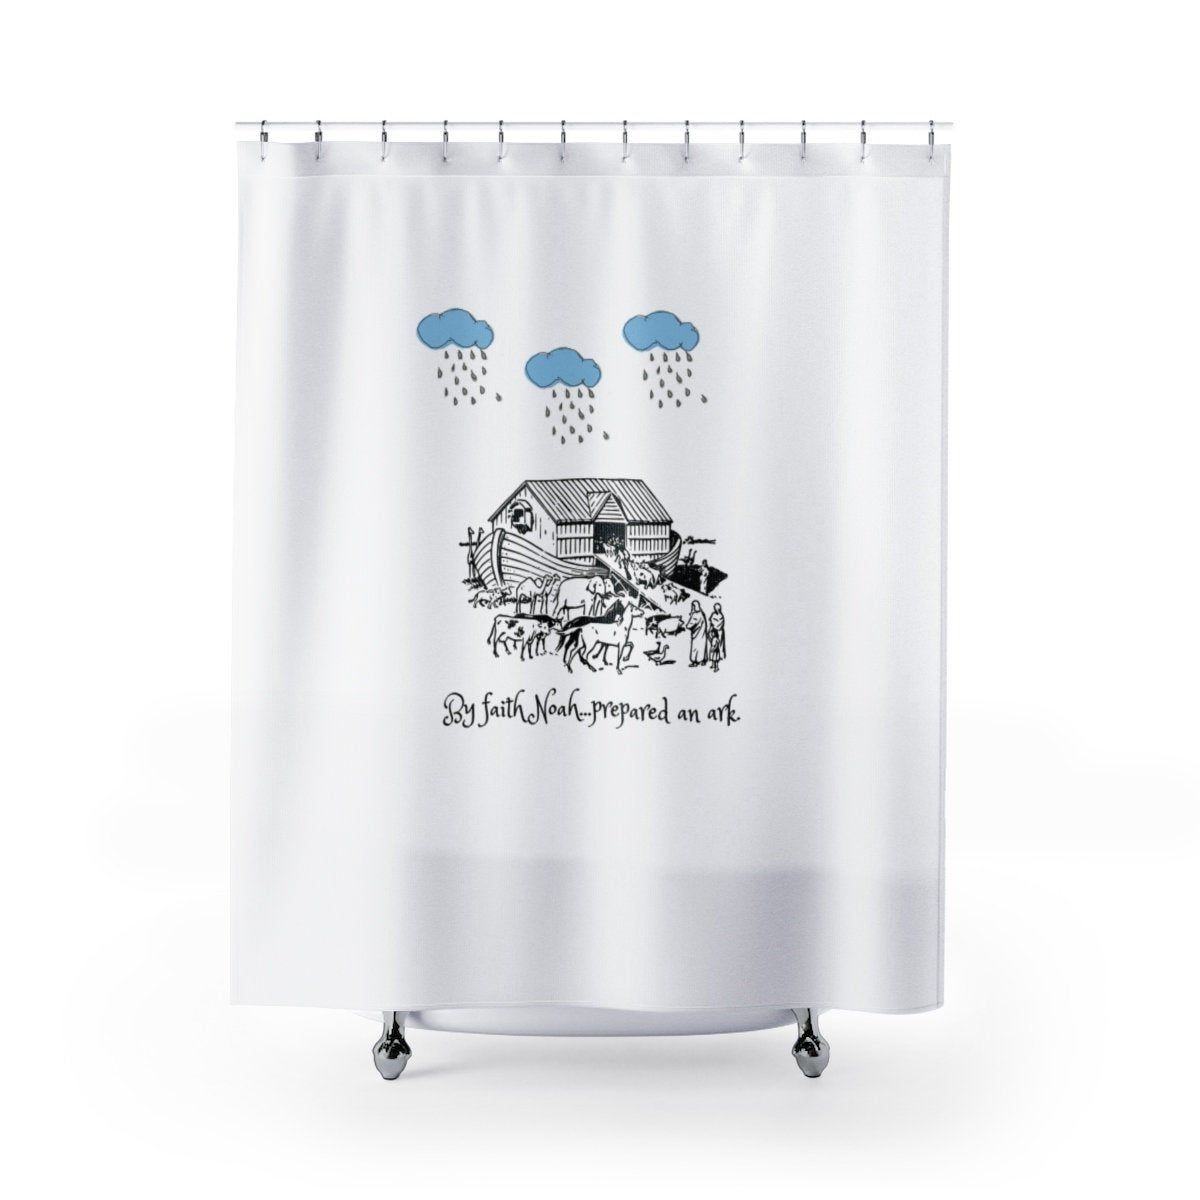 Noahs Ark Shower Curtain Bible Verse Shower Curtain Noahs Ark Bath Decor Kids Bible Shower Curtain Bible Verse Bath Decor Scripture Bath Set In 2020 With Images